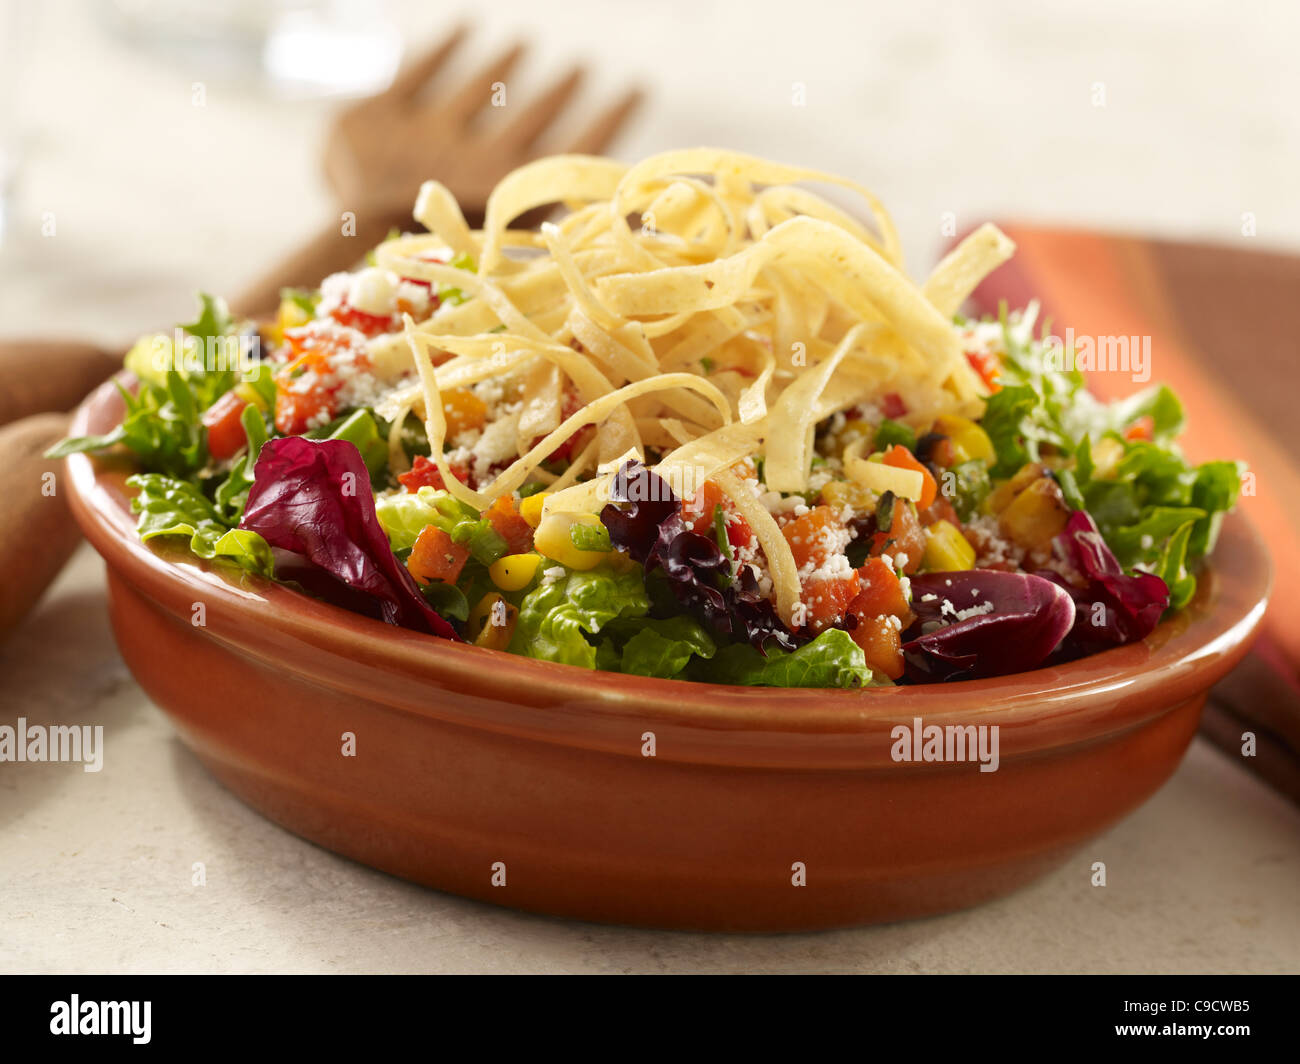 Mixed green salad topped with tortilla strips - Stock Image